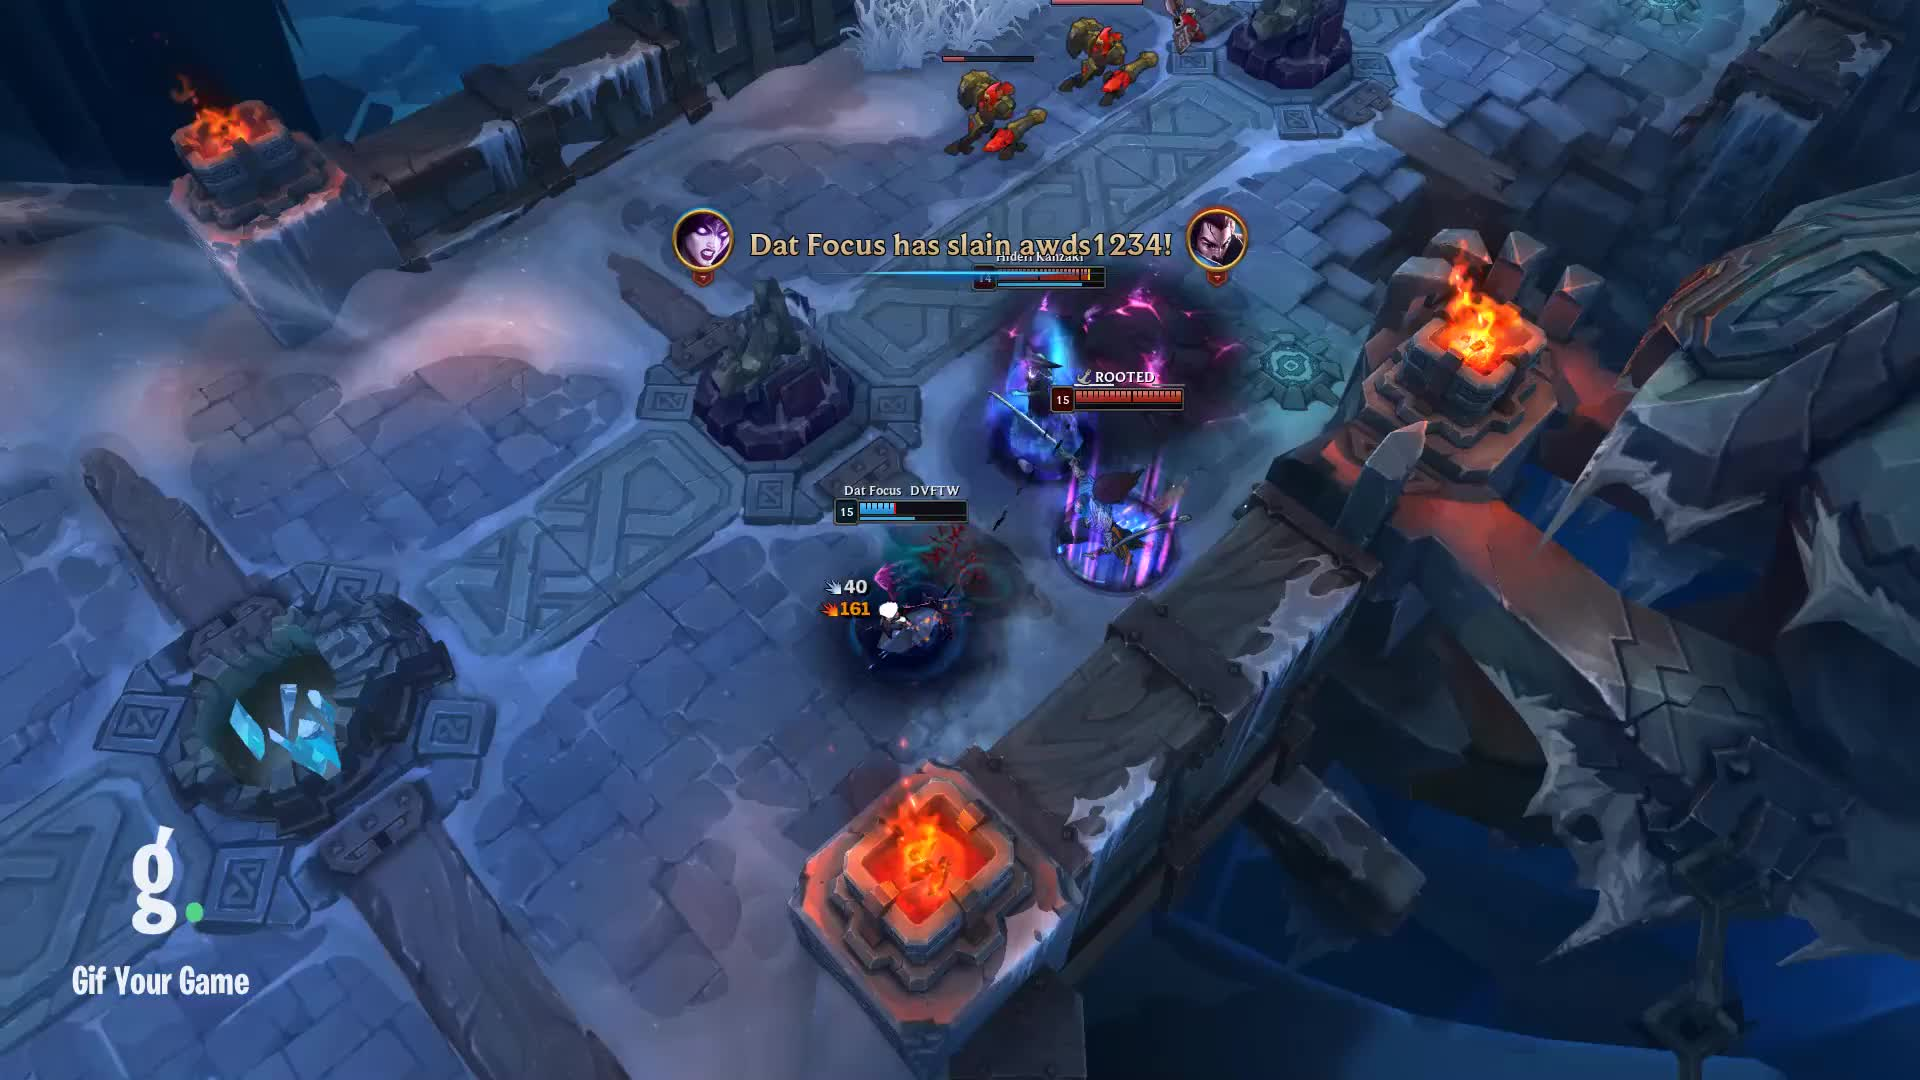 Gaming, Gif Your Game, GifYourGame, Kill, League, League of Legends, LeagueOfLegends, LoL, Remixed Champion Kill 50: Dat Focus kills awds1234 GIFs